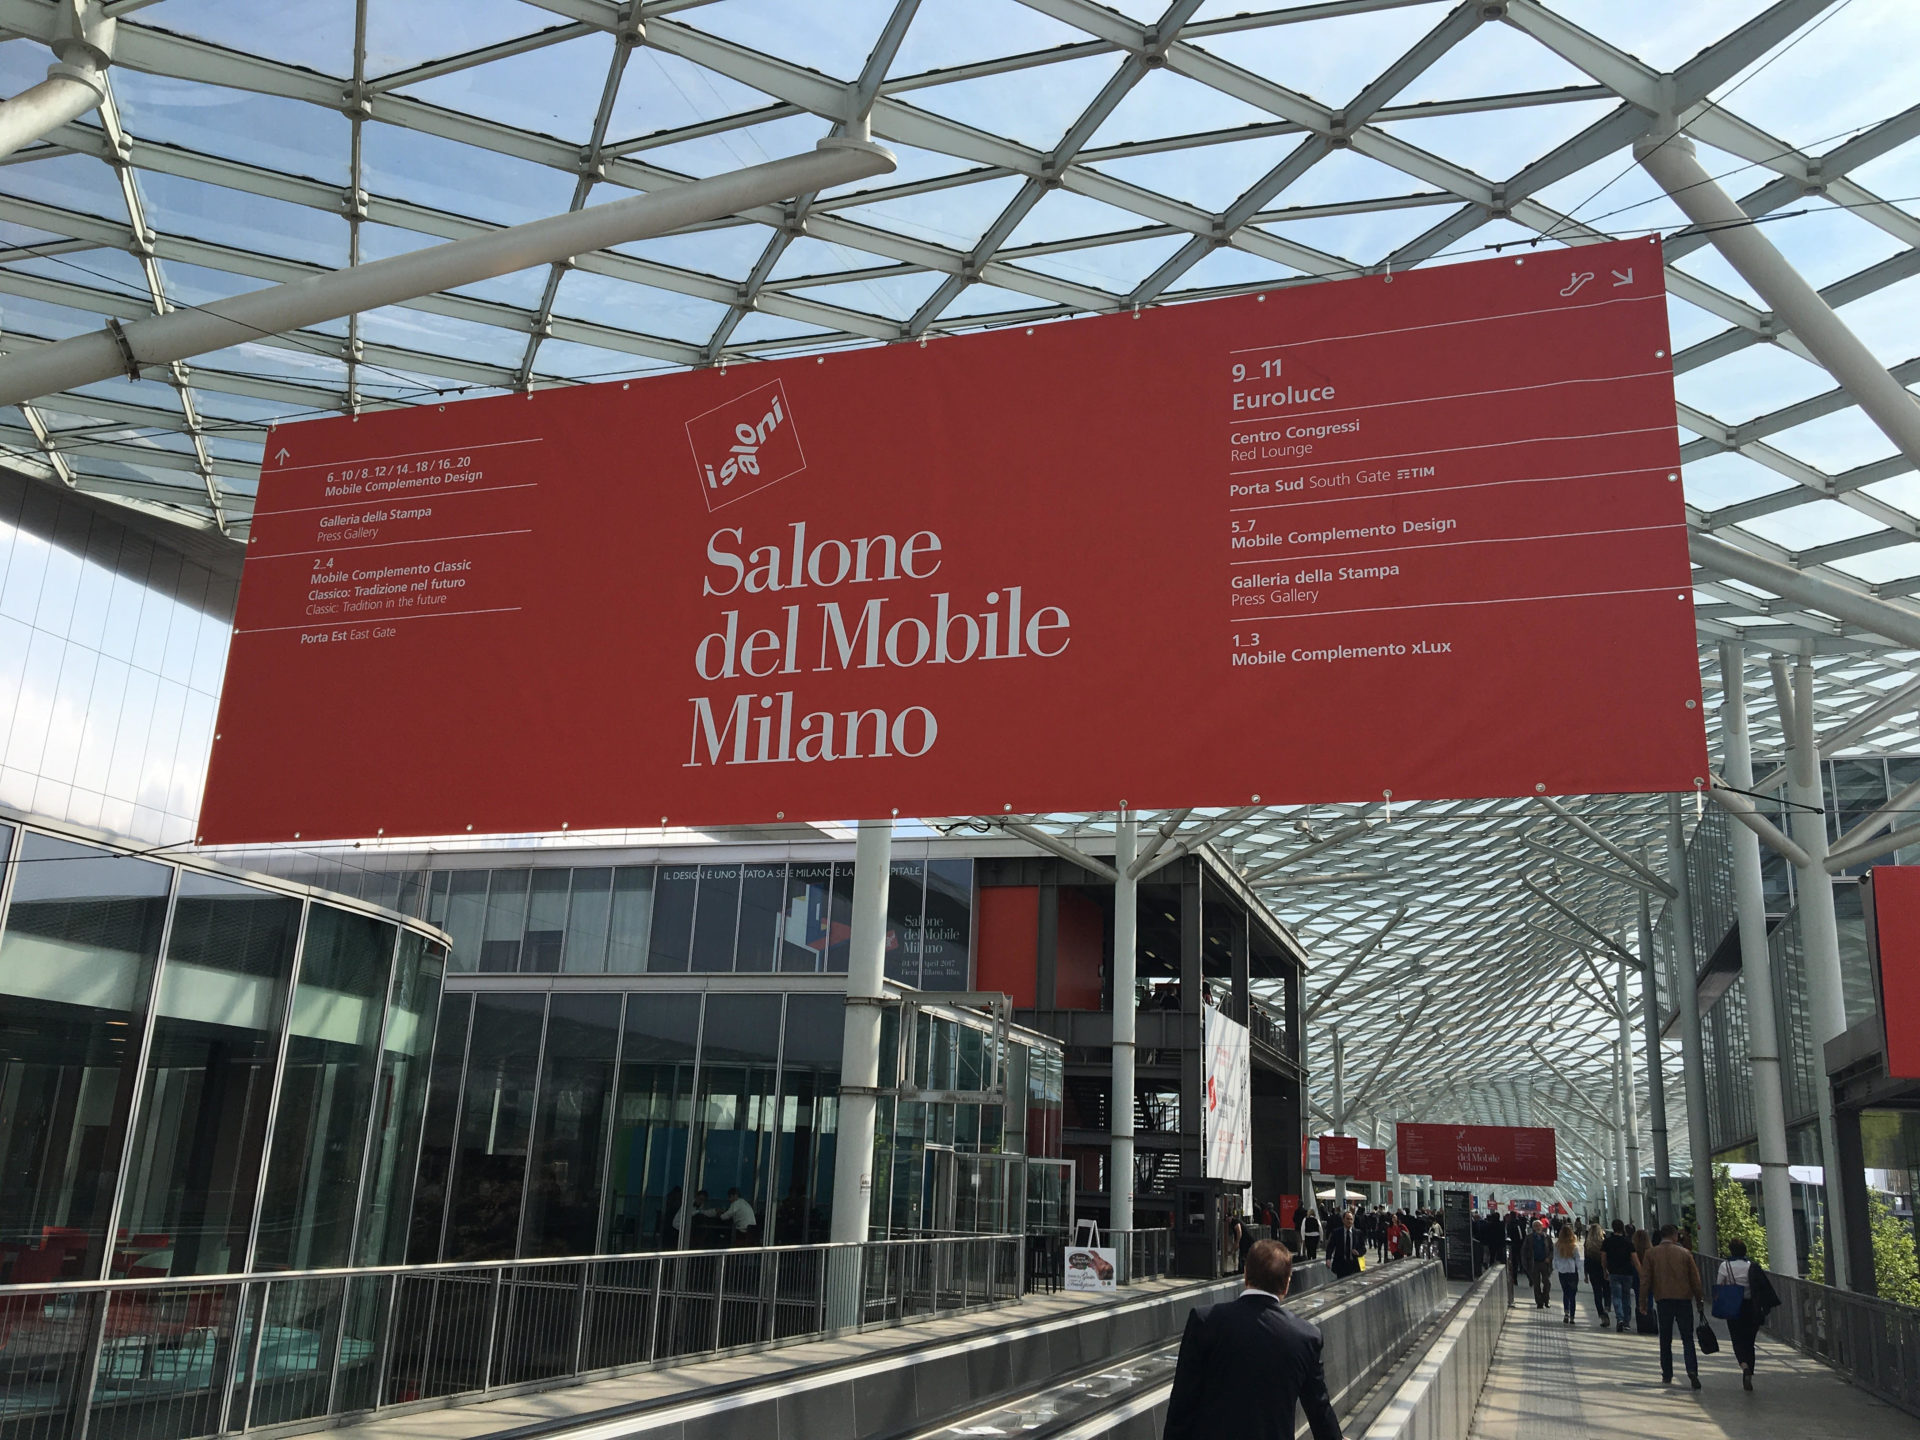 In ext salone del mobile milano euroluce 2017 for Fiera del mobile milano 2017